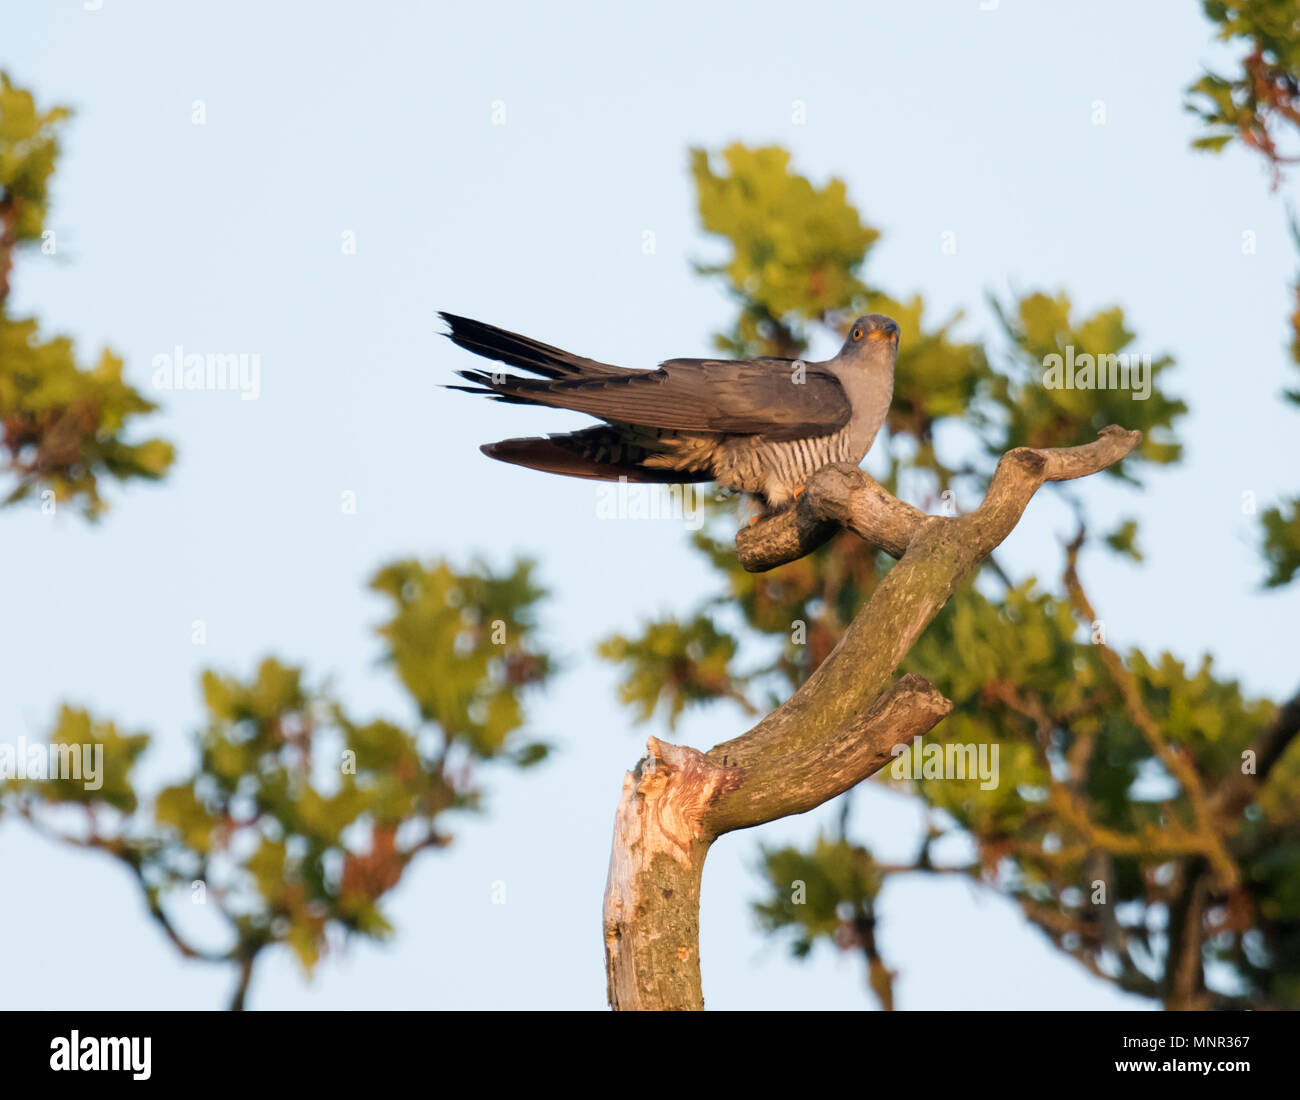 Agrey male Cuckoo (Cuculus canorus) perched in tree at sunrise, Oxfordshire - Stock Image